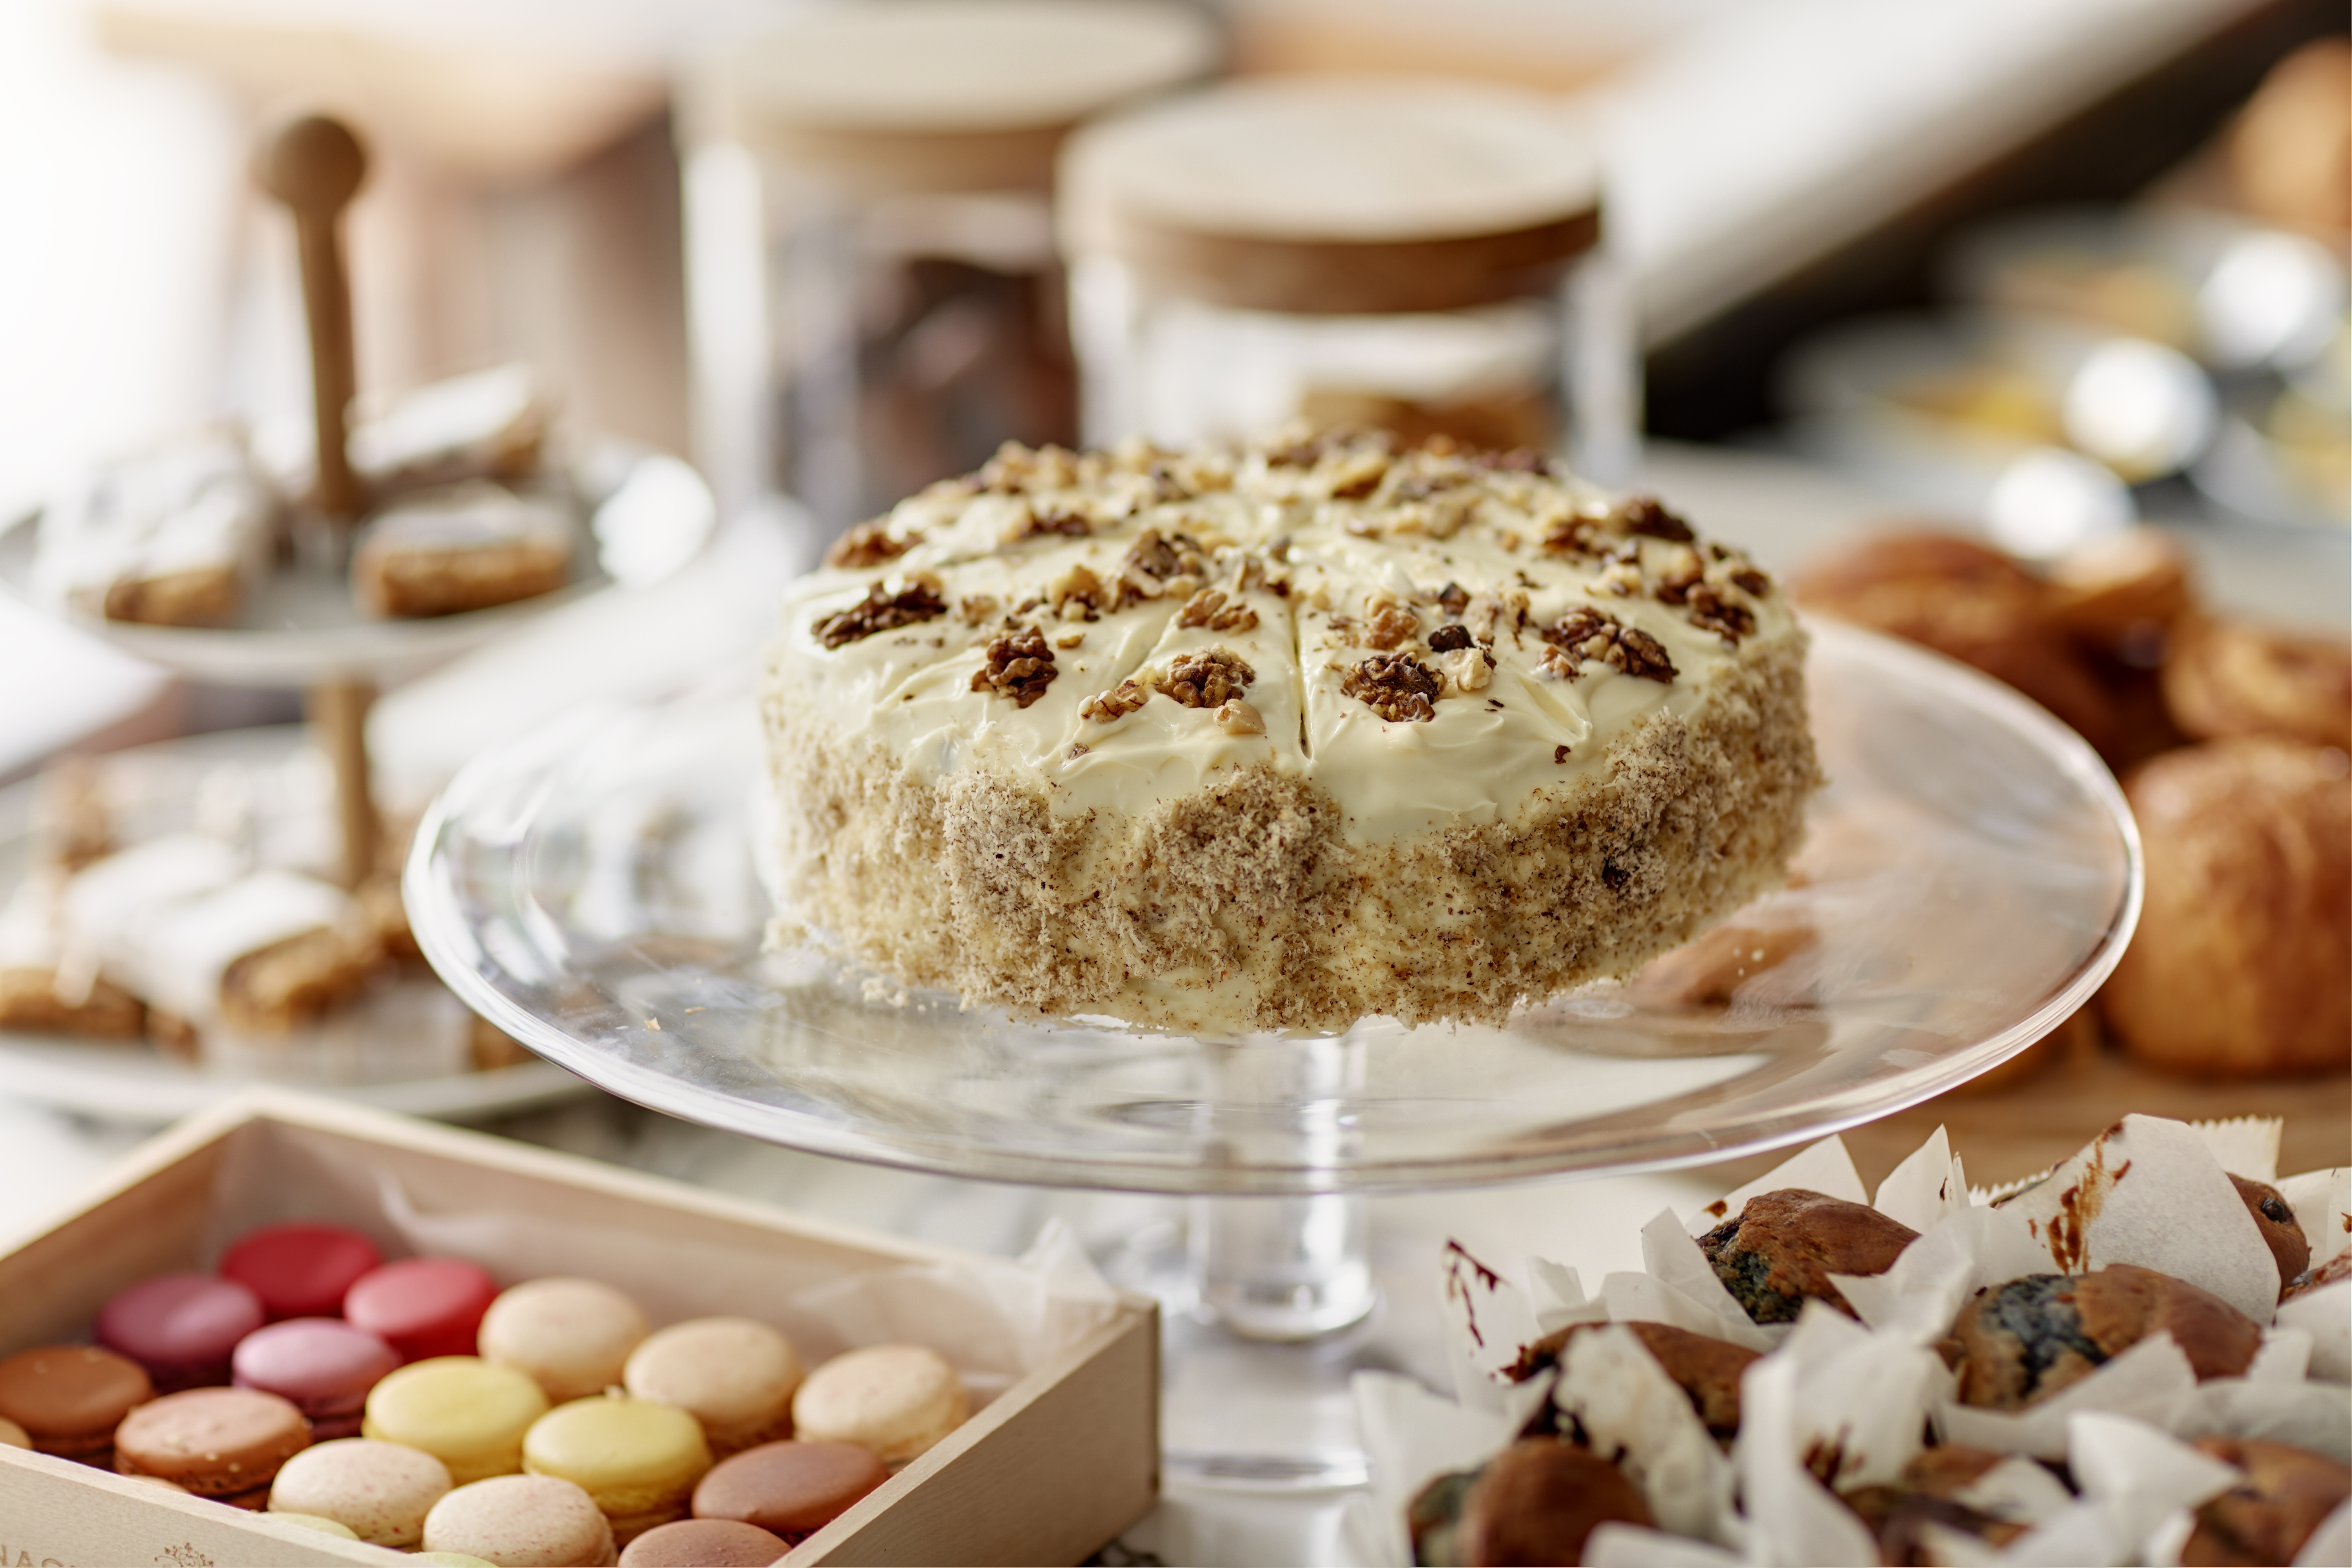 Nutritional Value Of Home Made Spice Cake